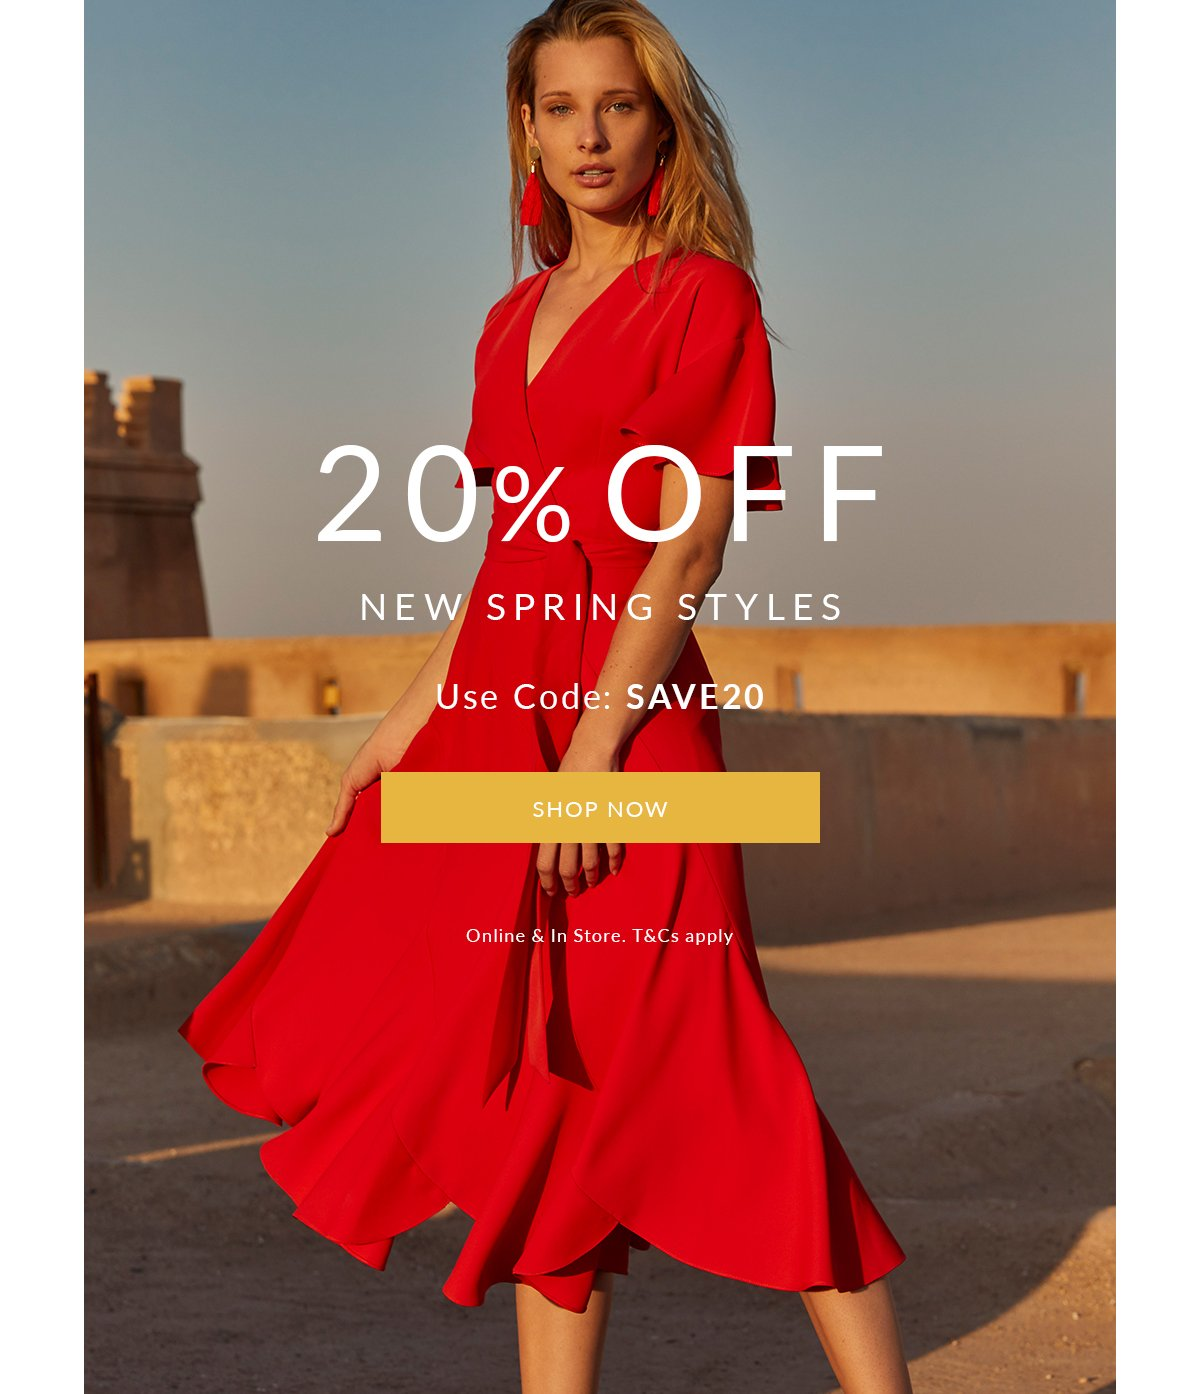 20% off new spring styles  | Shop Now